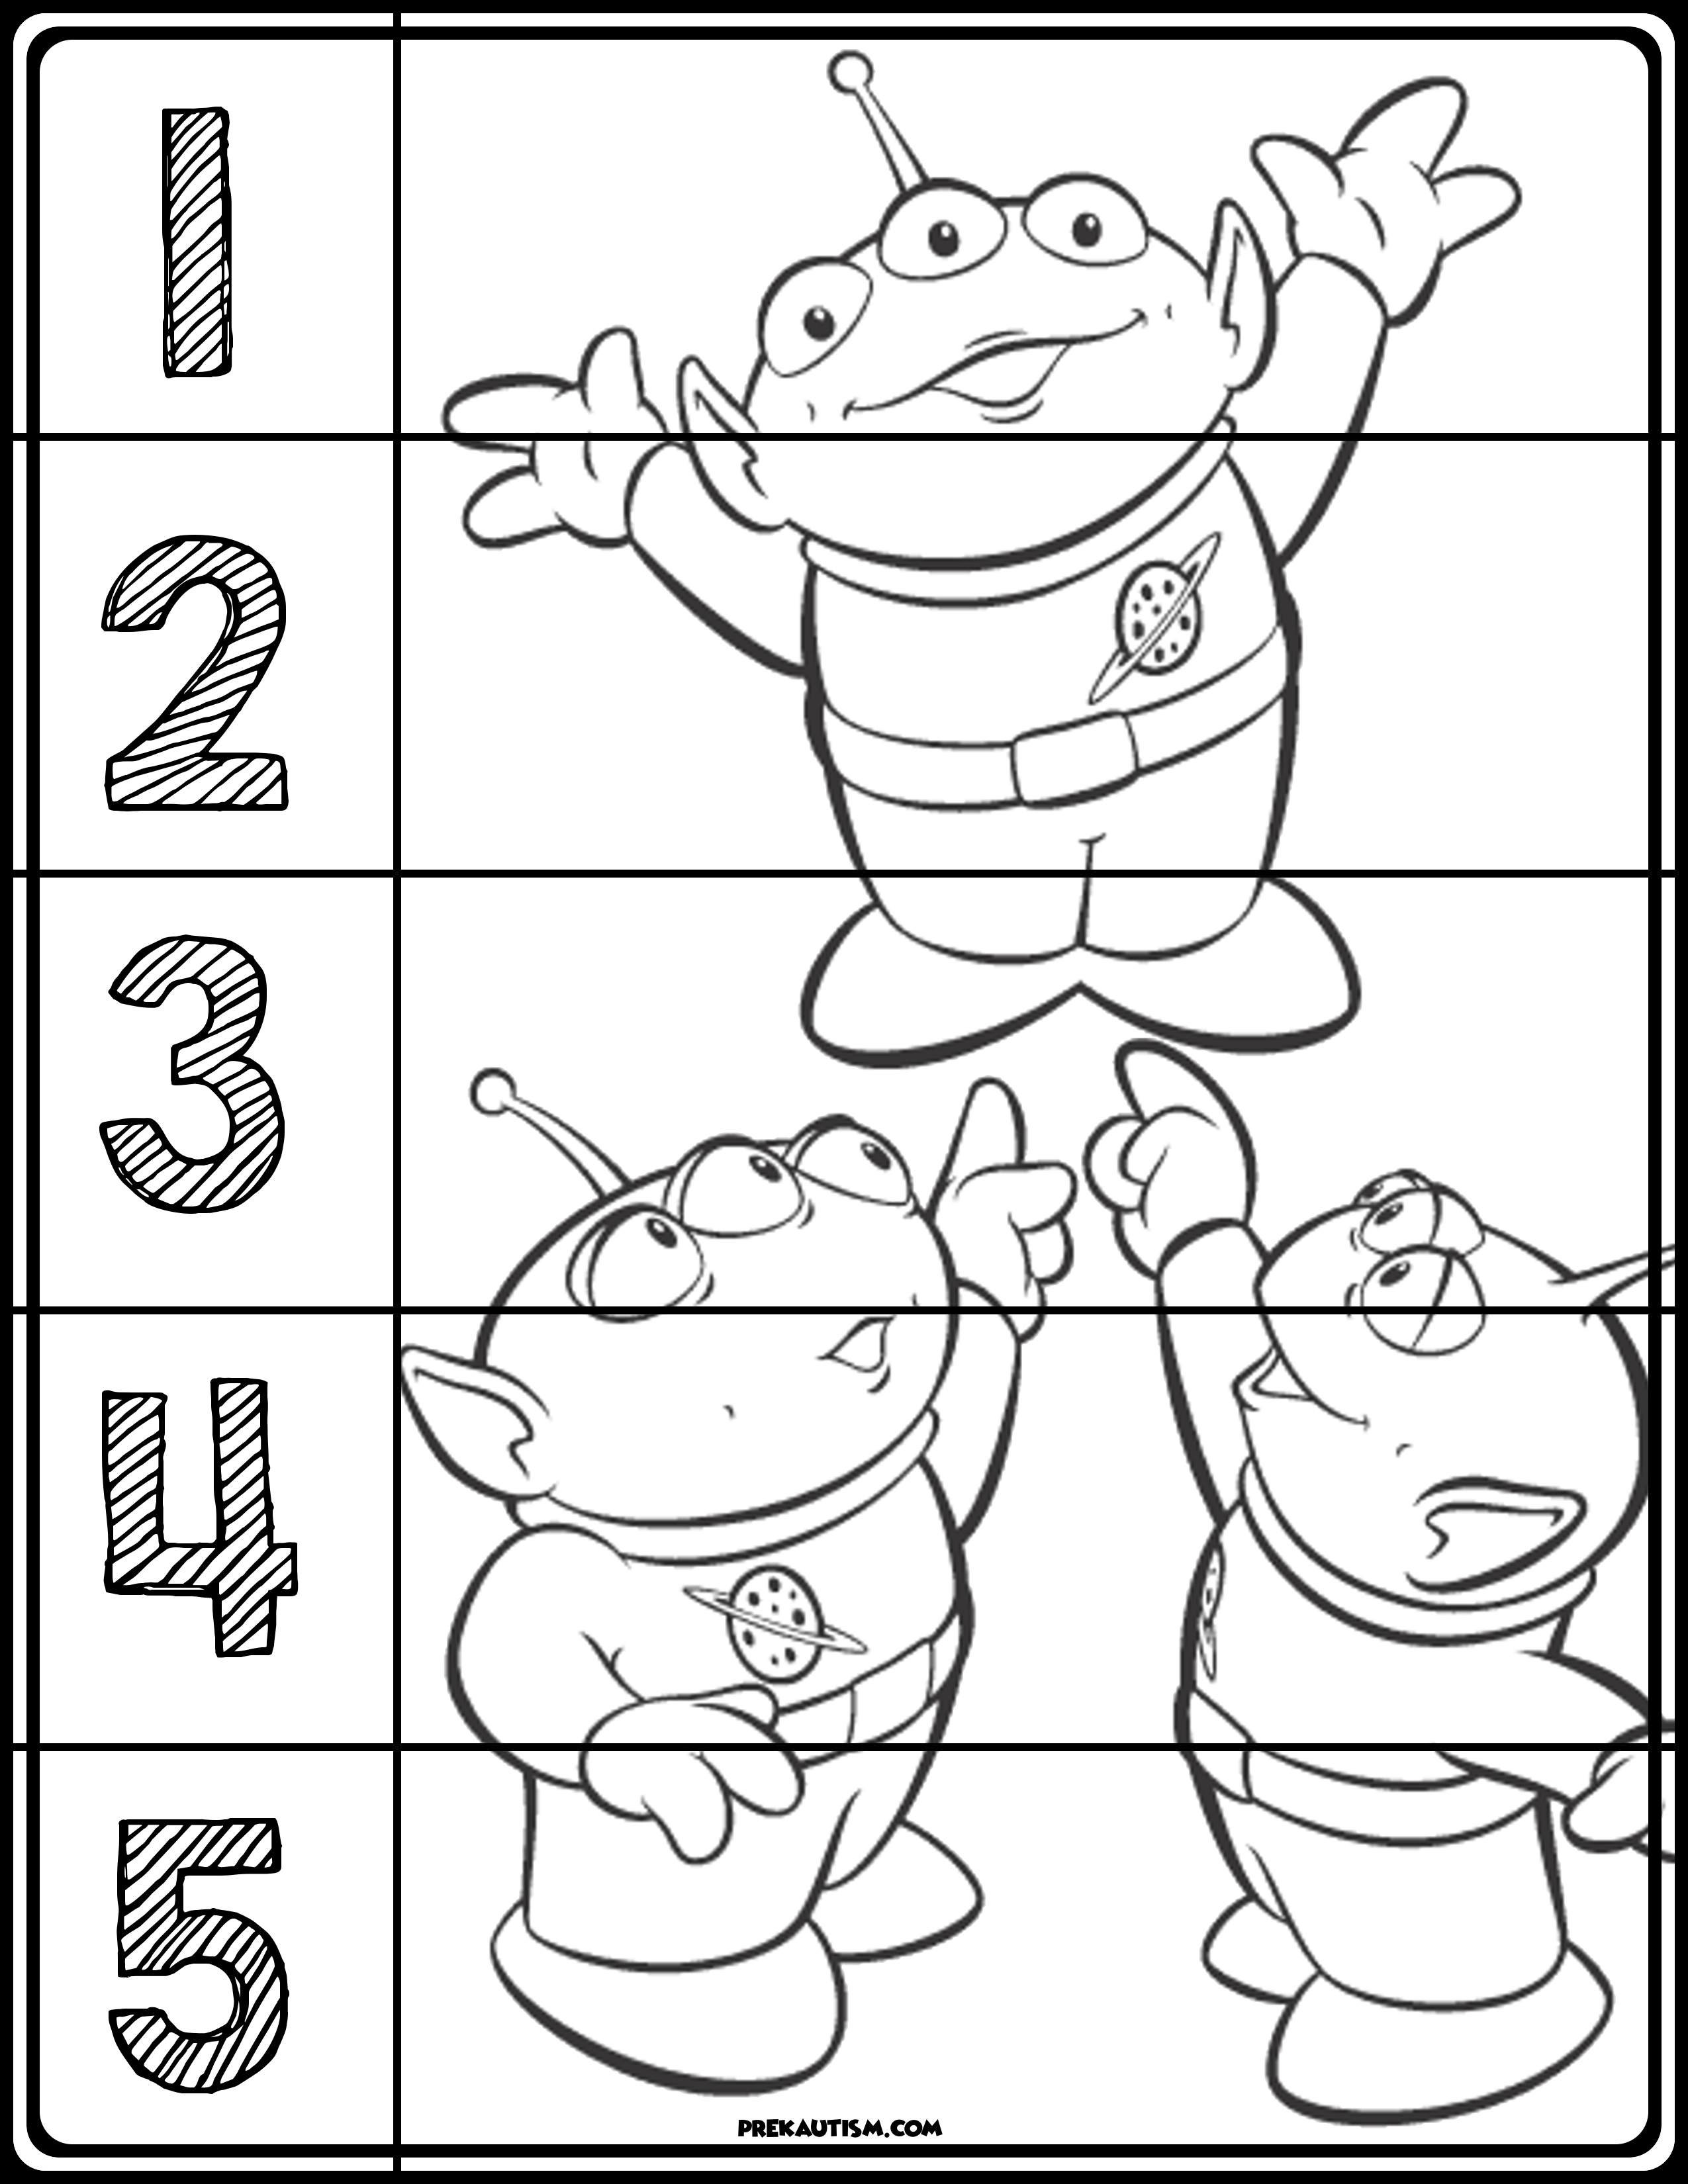 coloring toy worksheet toys coloring pages coloring worksheet toy 1 1